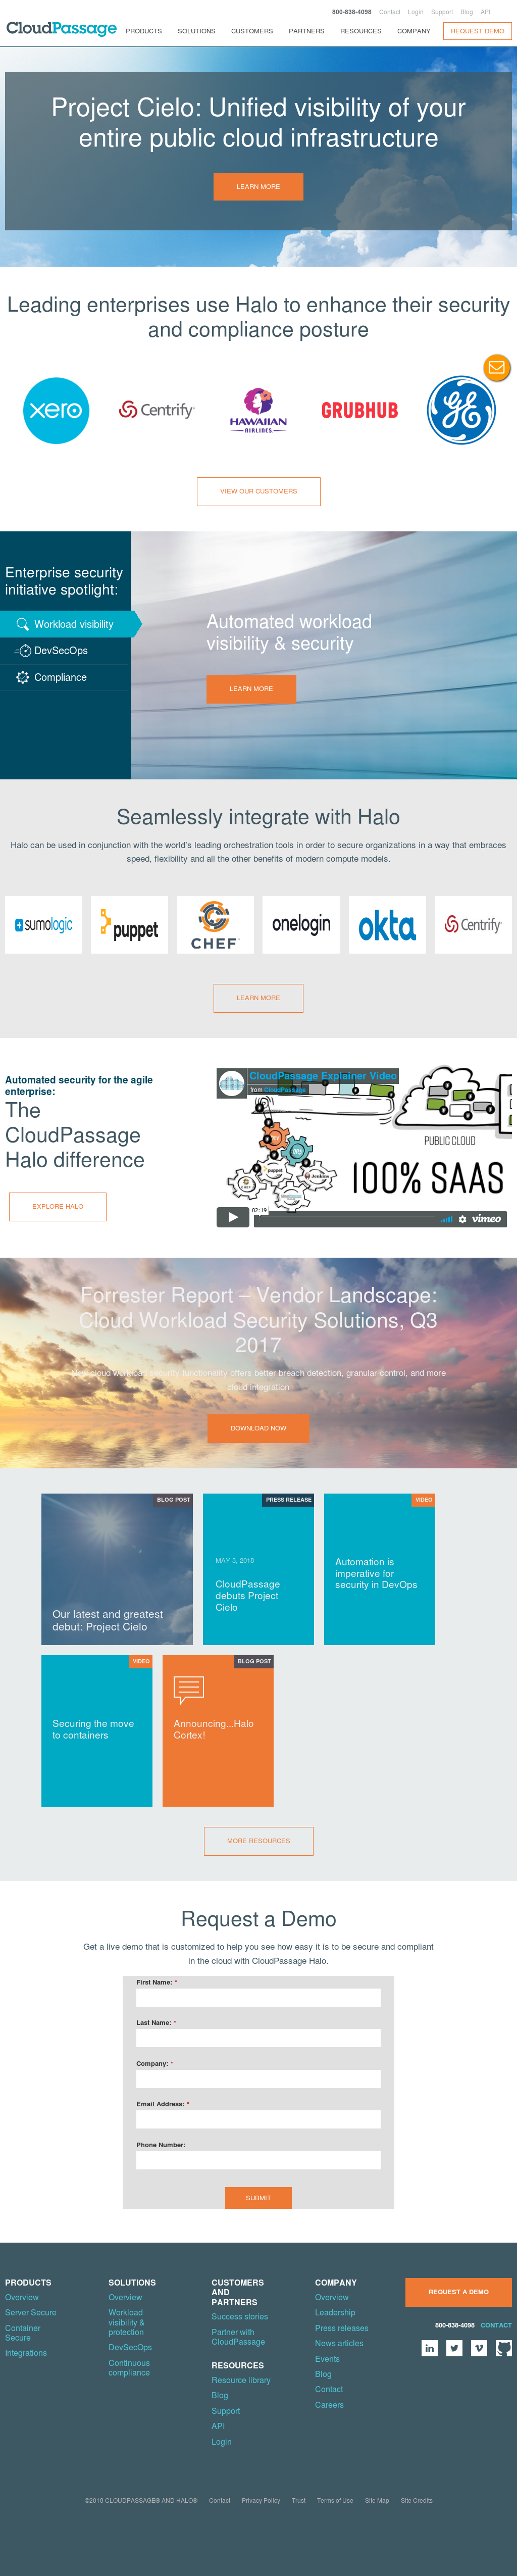 CloudPassage Competitors, Revenue and Employees - Owler